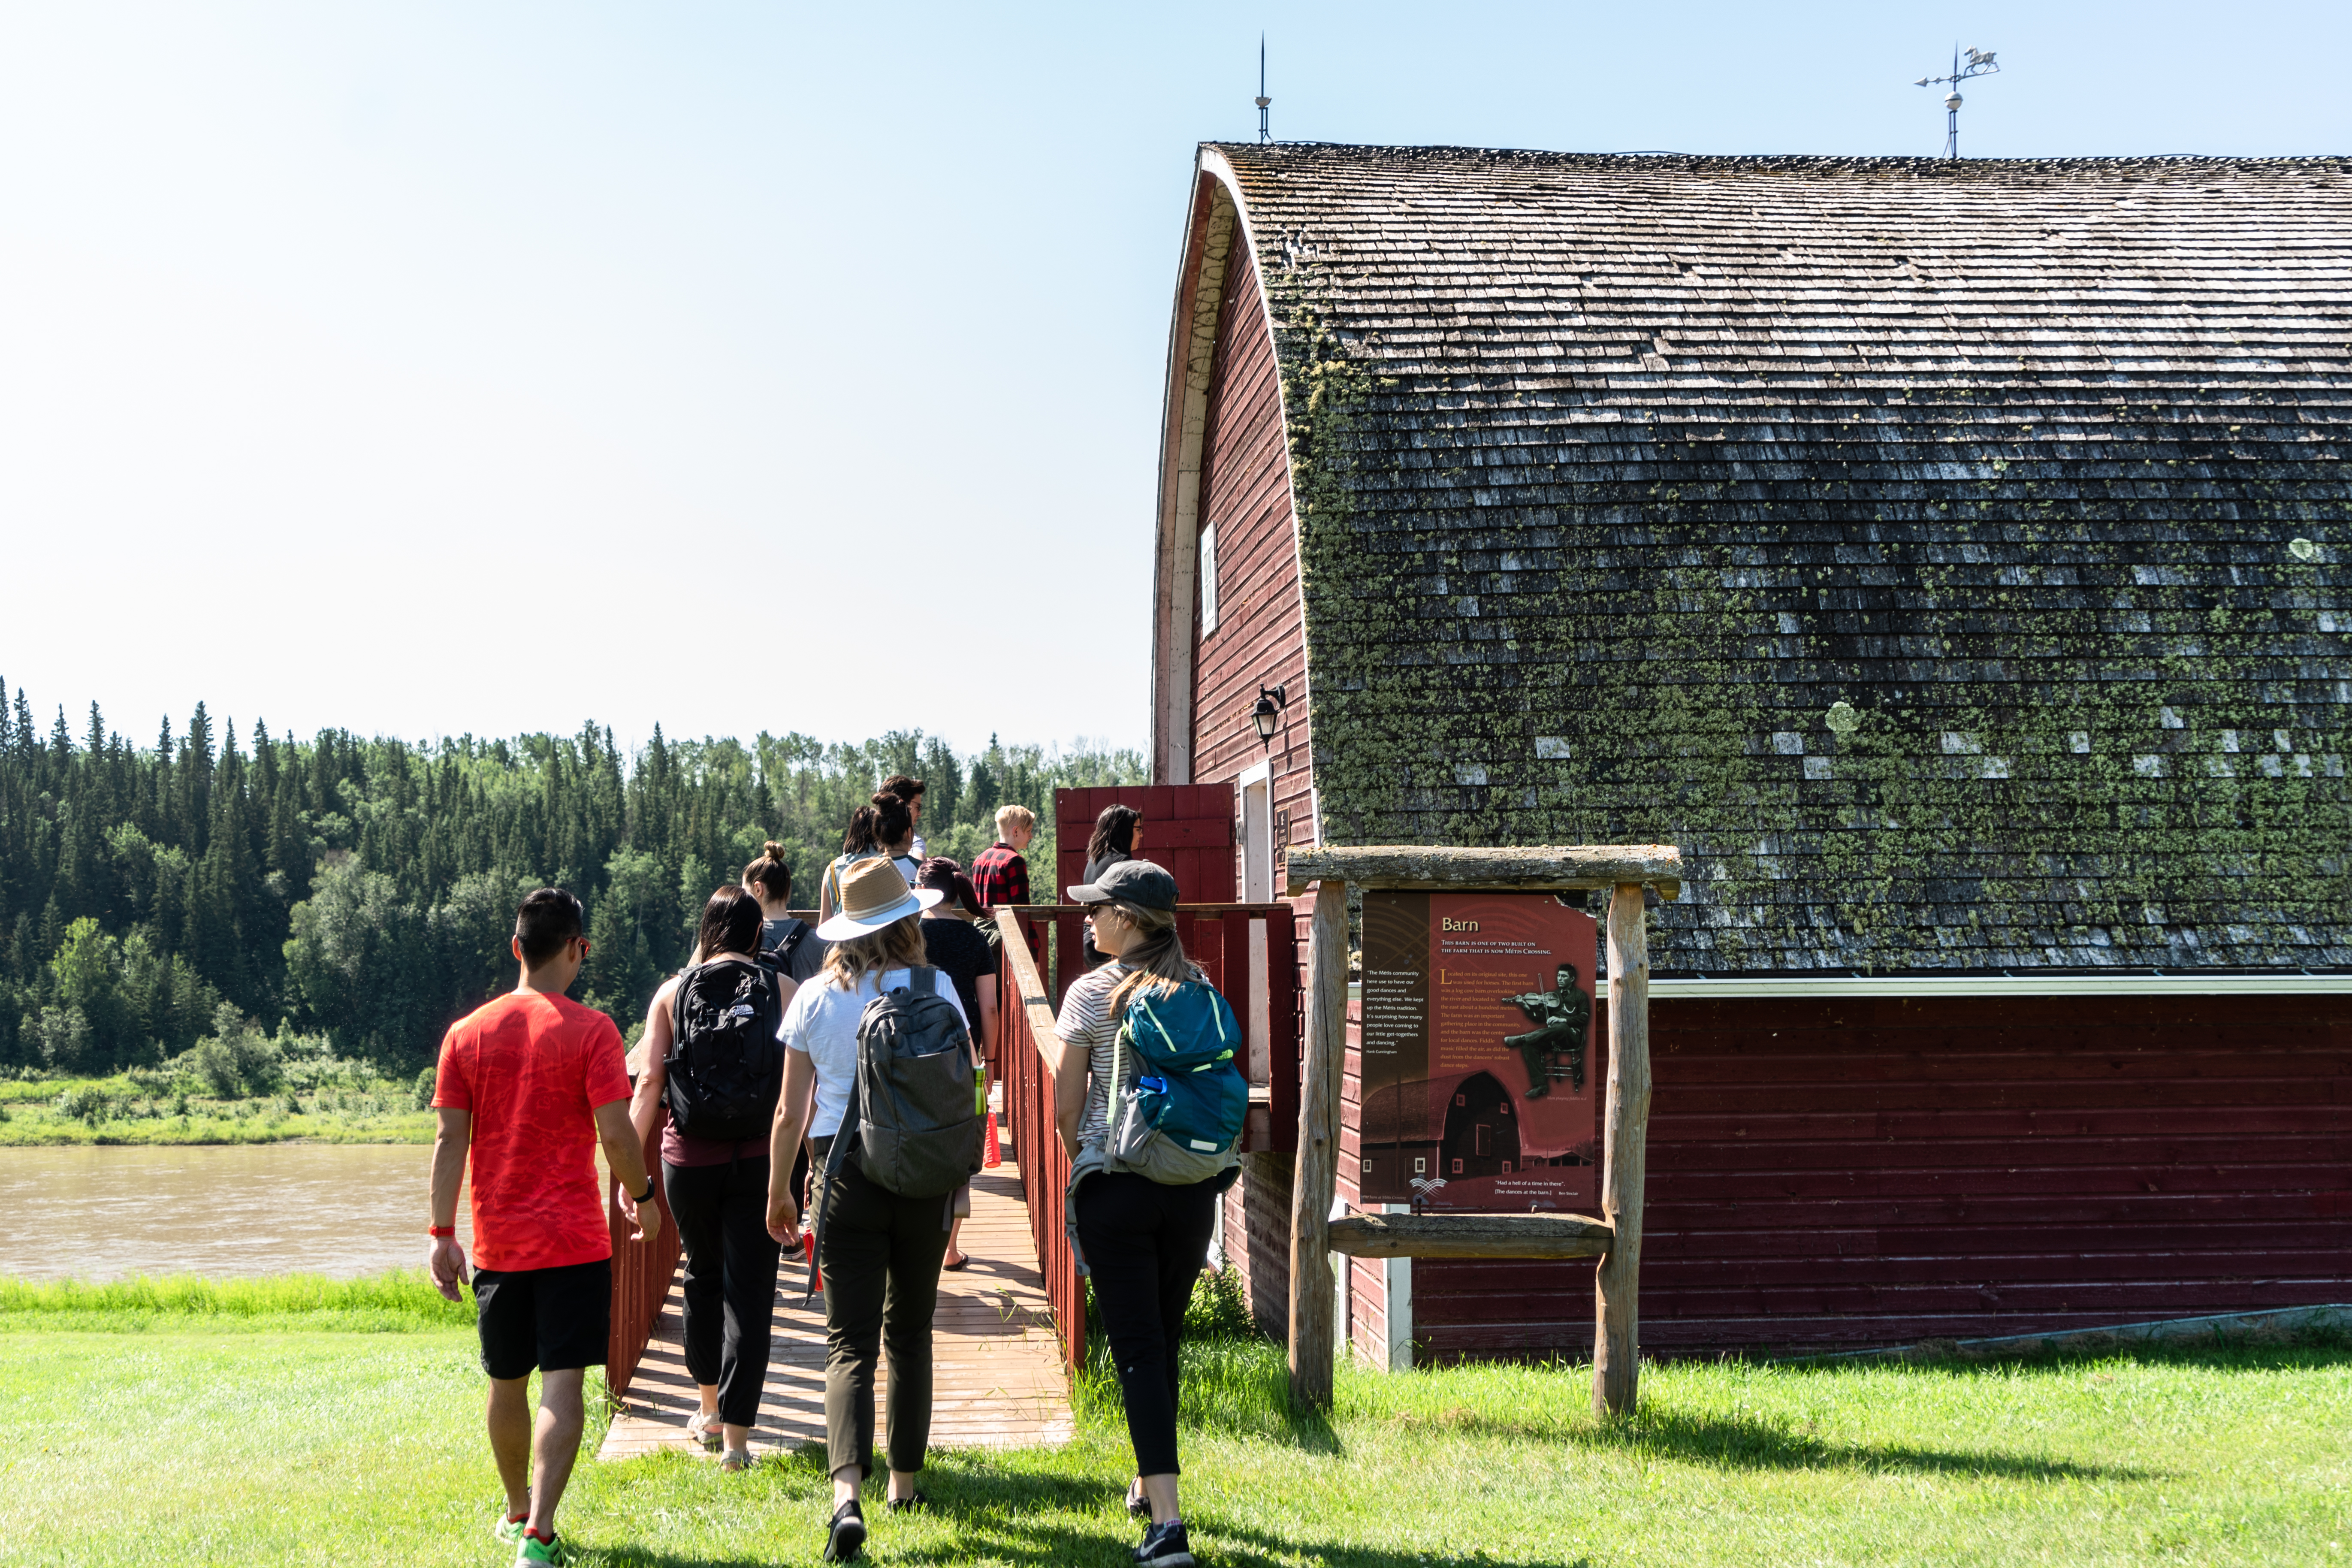 Metis Crossing A group of people enter a barn